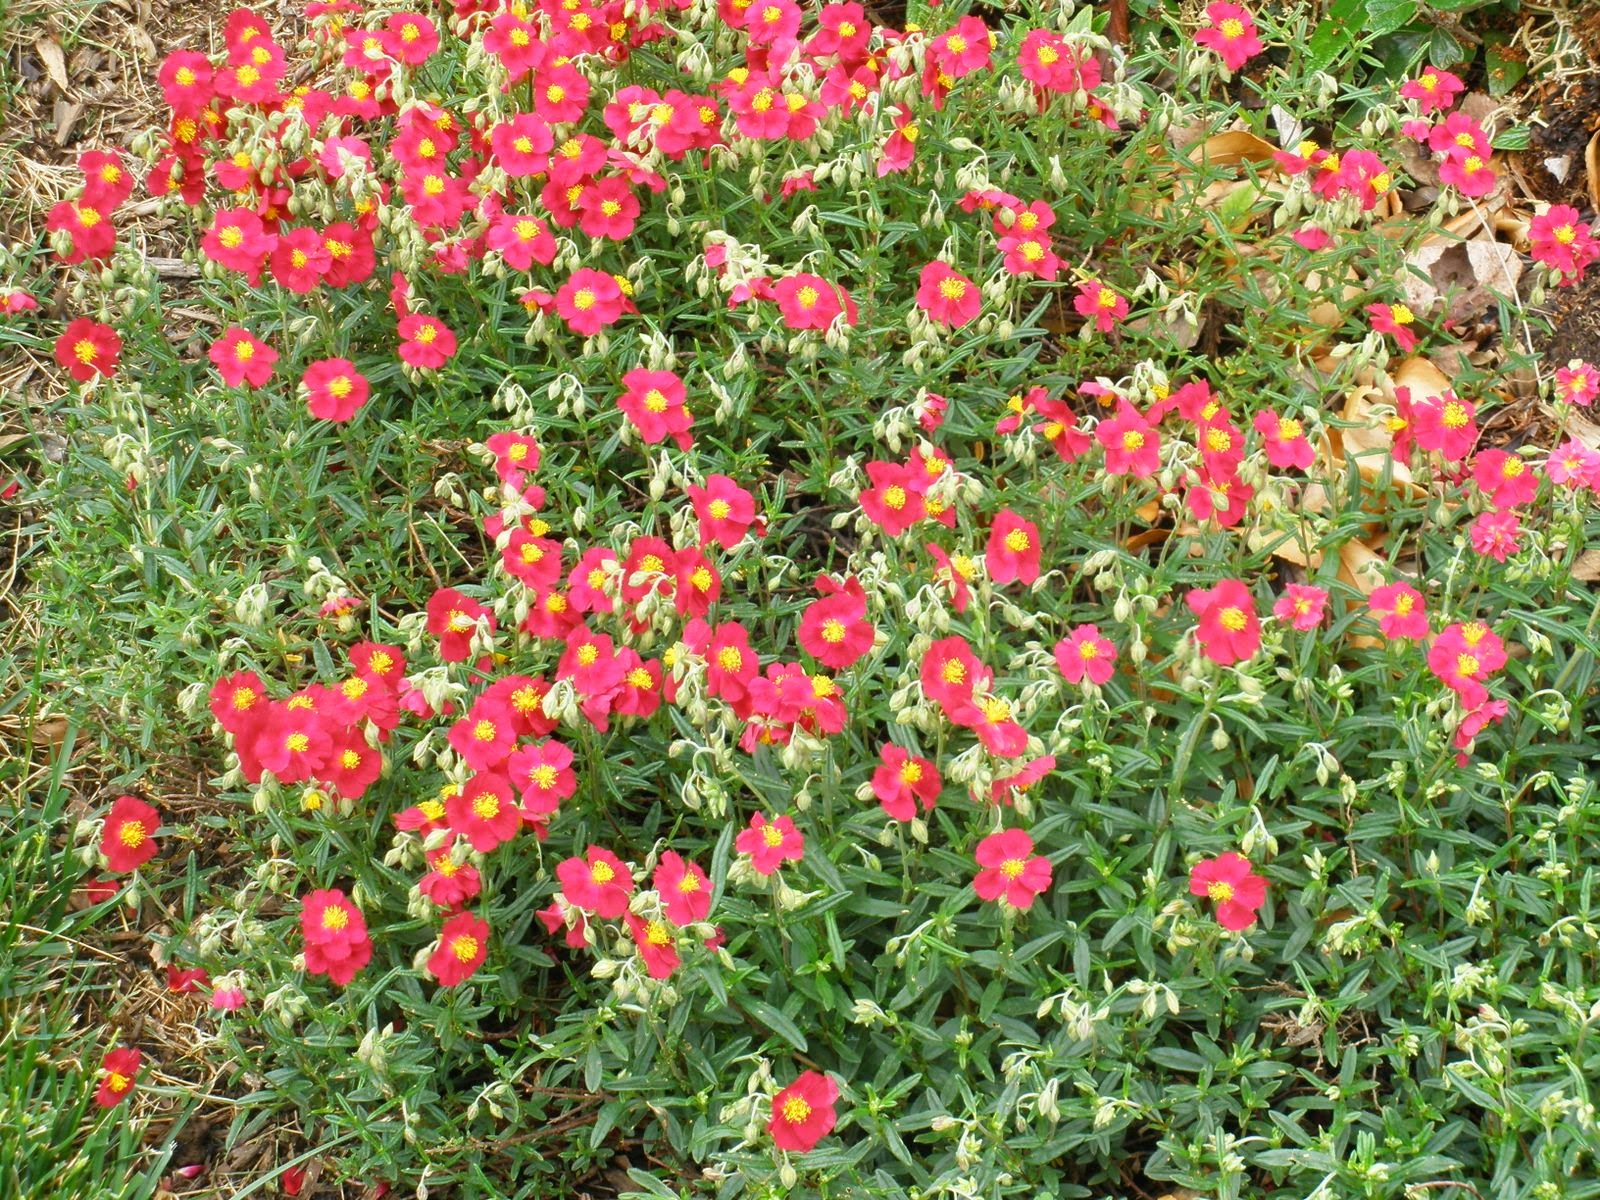 The Small Red Flowers With Yellow Centers Are Cheerful And Make A Perfect Edging Plant For Front Of Border